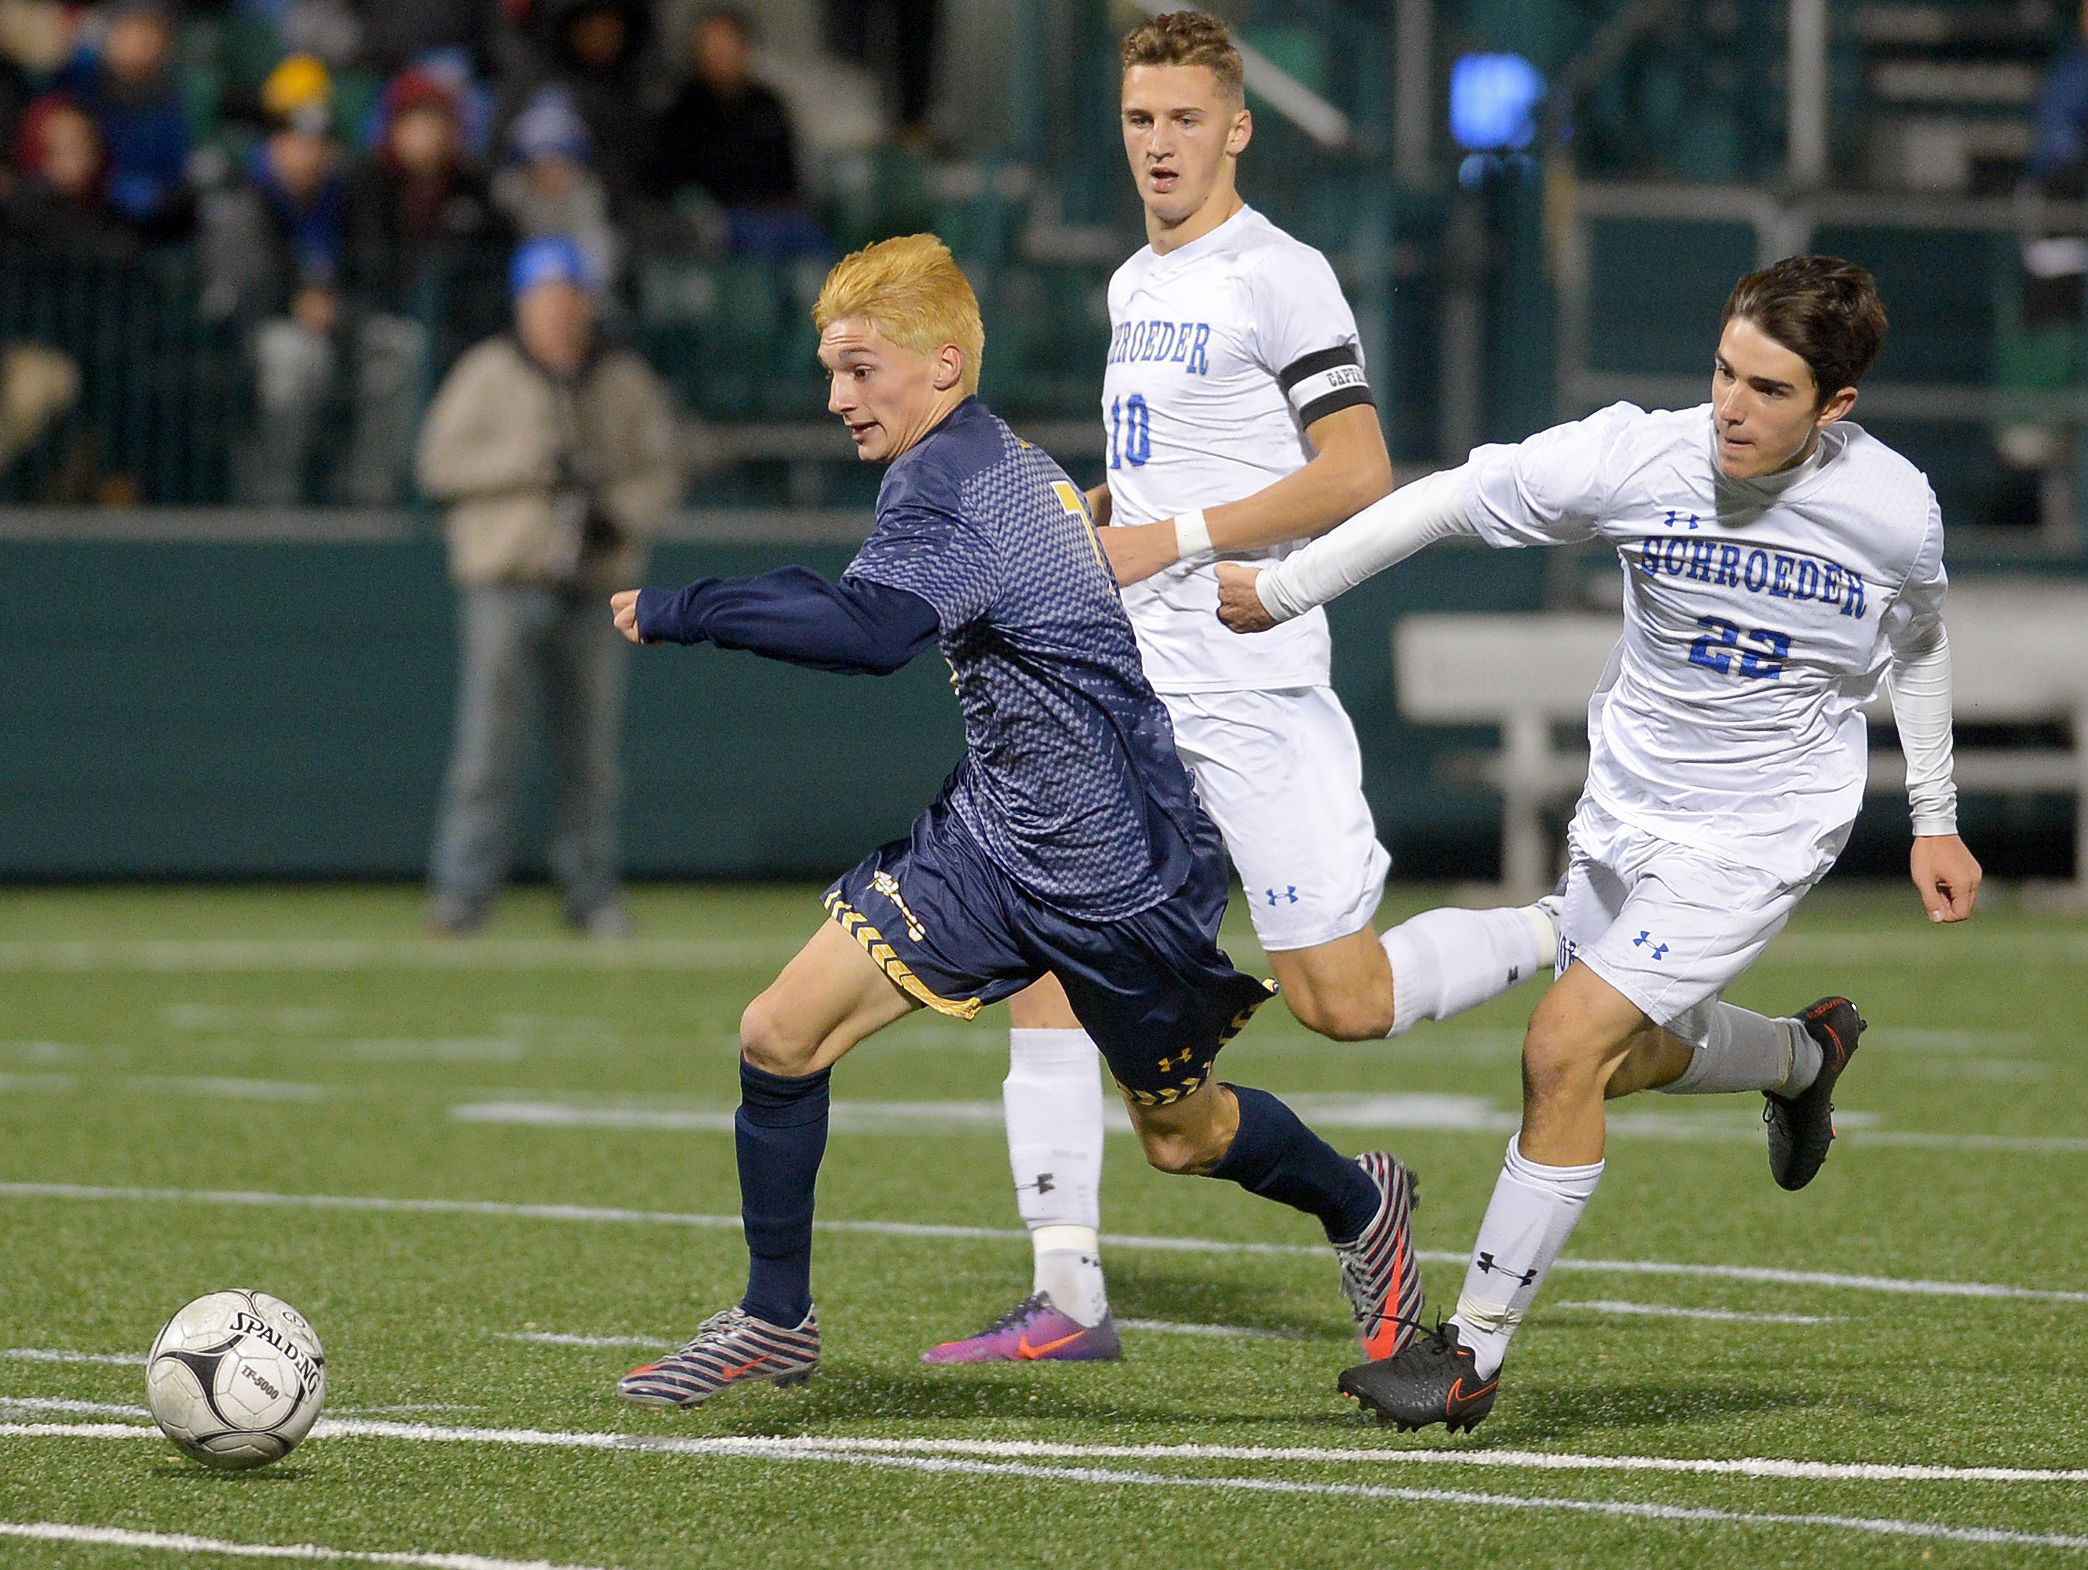 Webster Thomas' Ryan Cullen, left, breaks away from Webster Schroeder's Andriy Demydiv and Conor Bollin to score the Titans' first half goal during a Class AA semifinal played at Rhinos Stadium on Oct. 27, 2016.